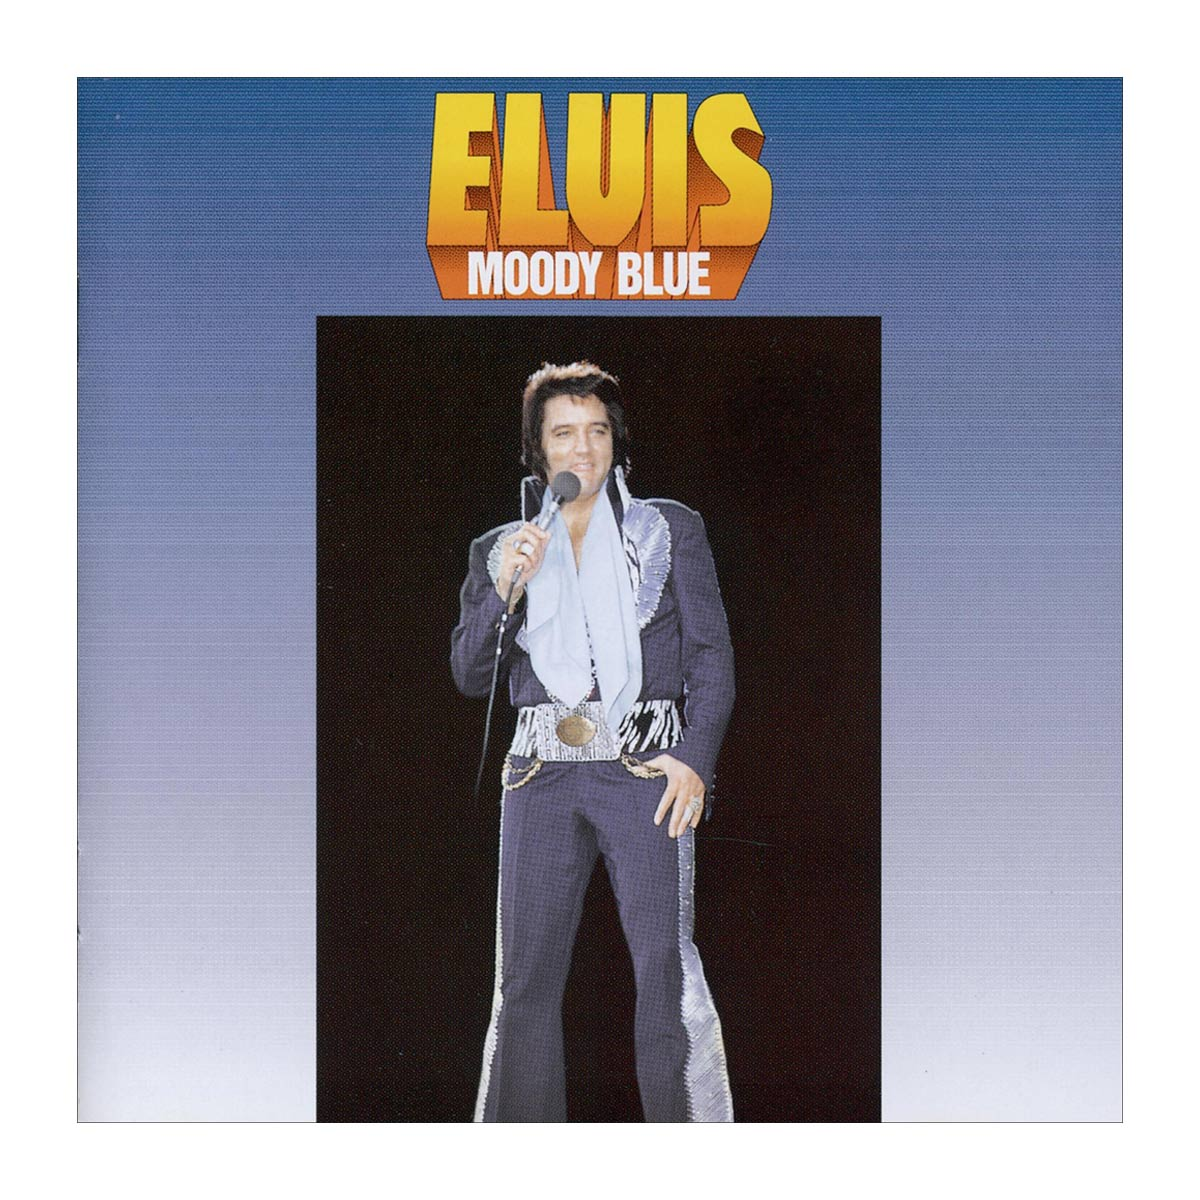 CD Elvis - Moody Blue